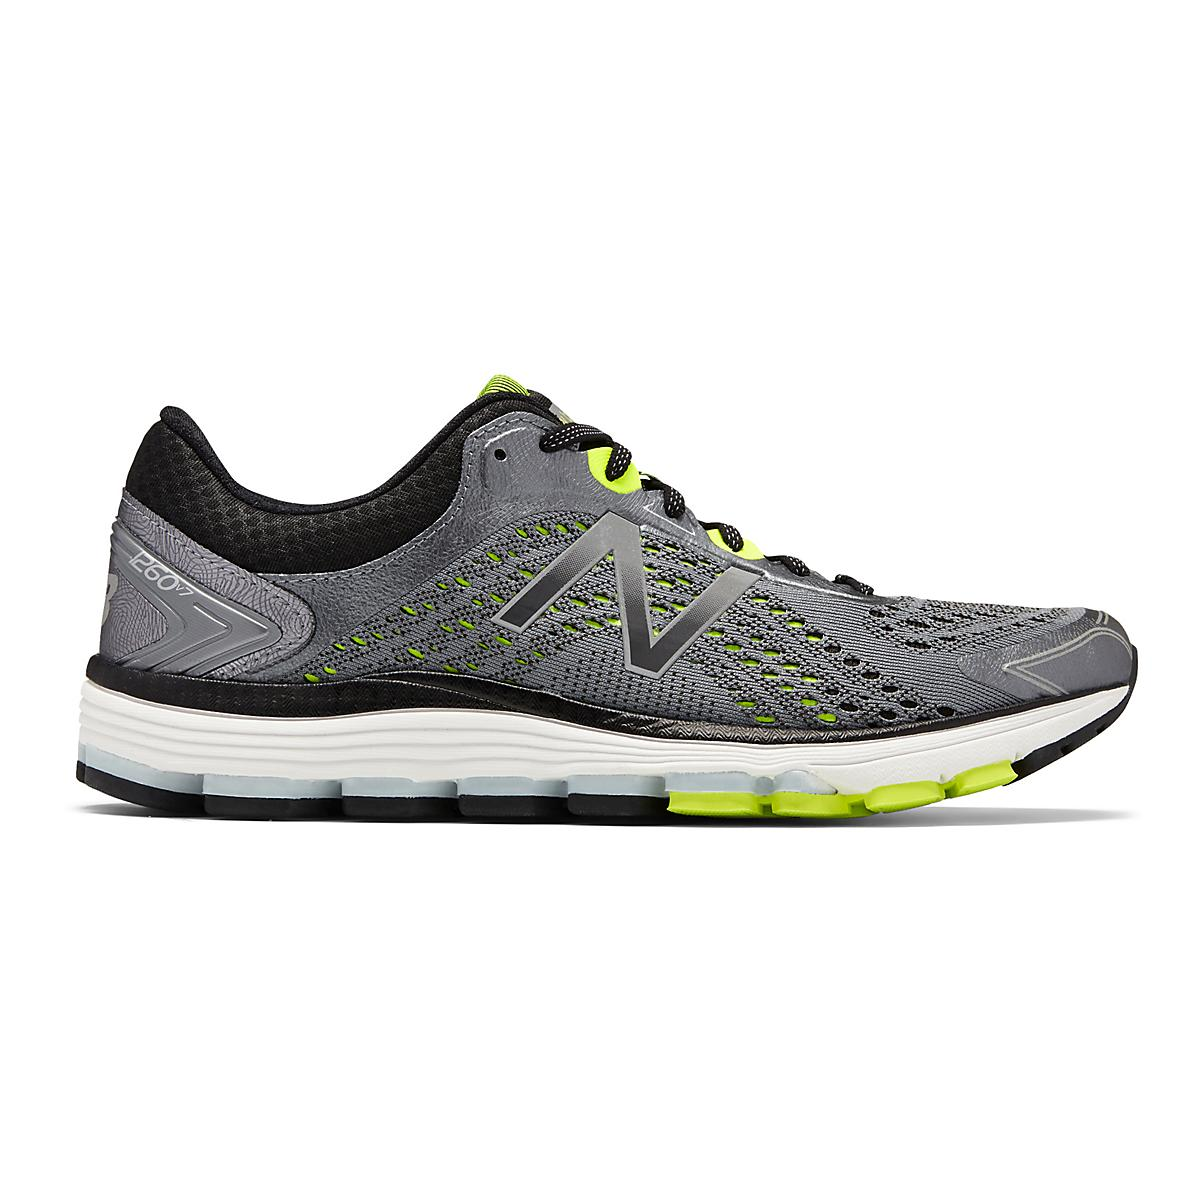 85673e44fdf6 ... germany mens new balance 1260v7 running shoe at road runner sports  8fd63 c632b